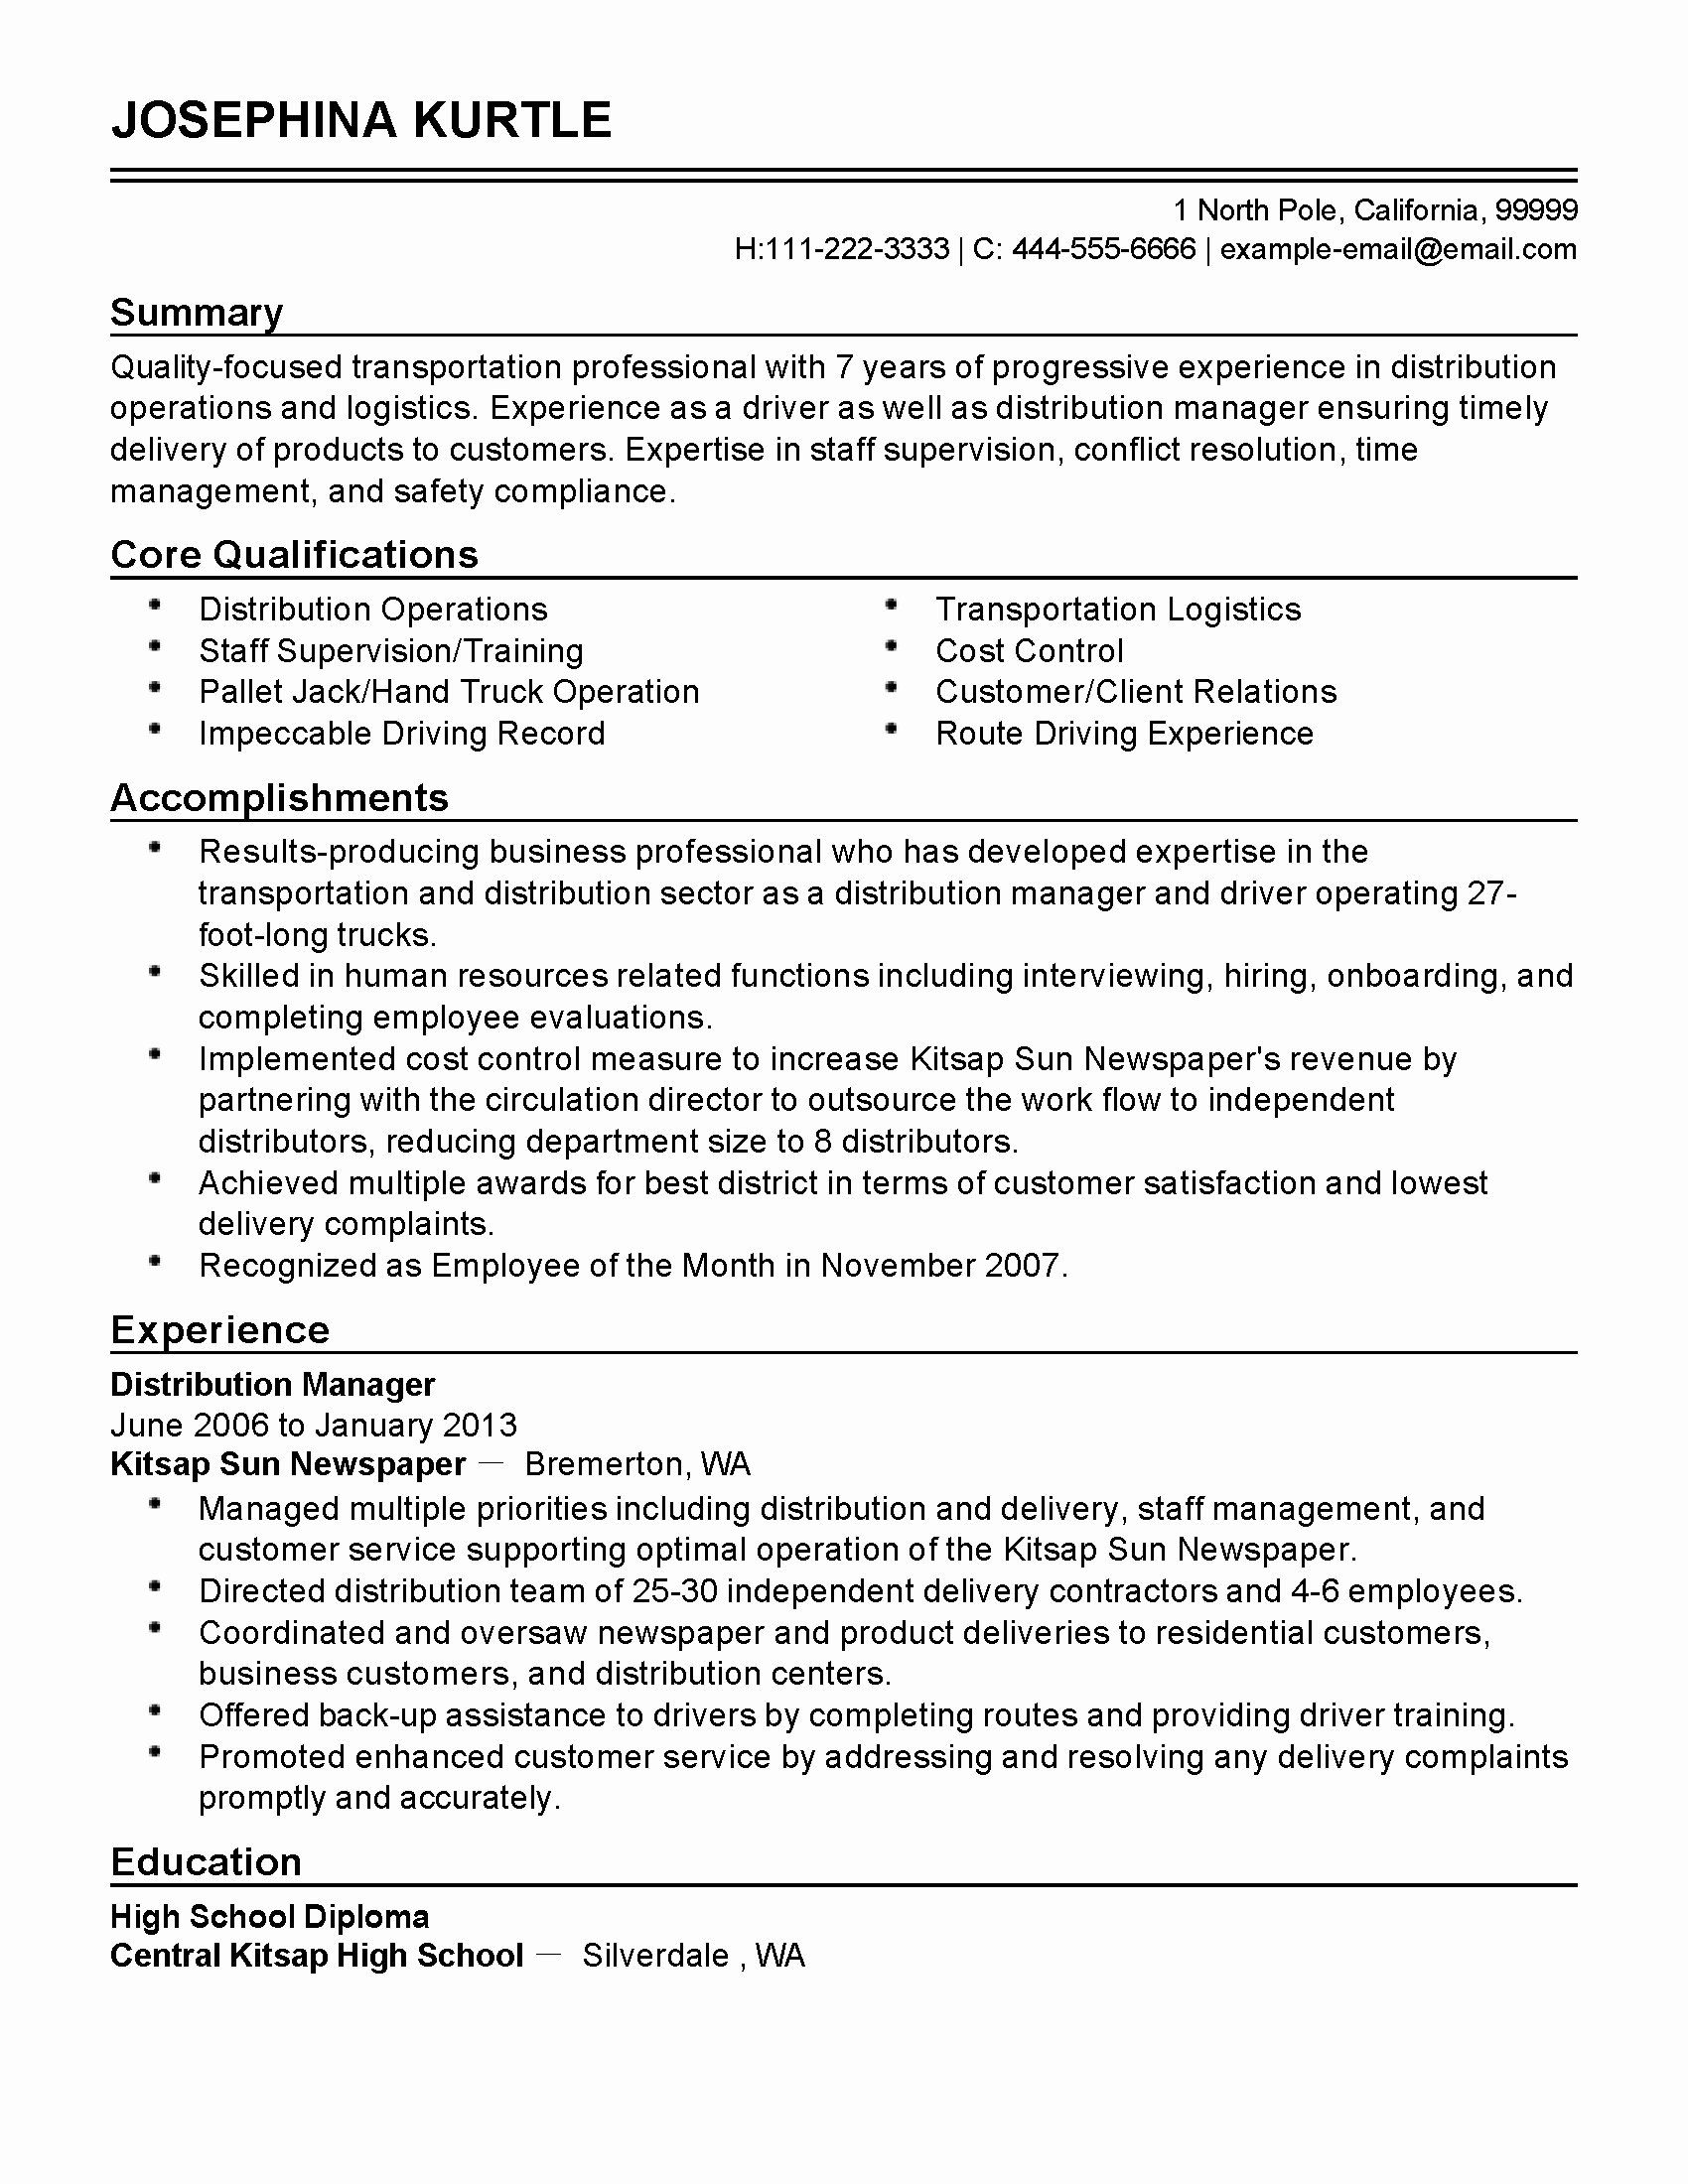 rutgers business school resume template inspirational 50